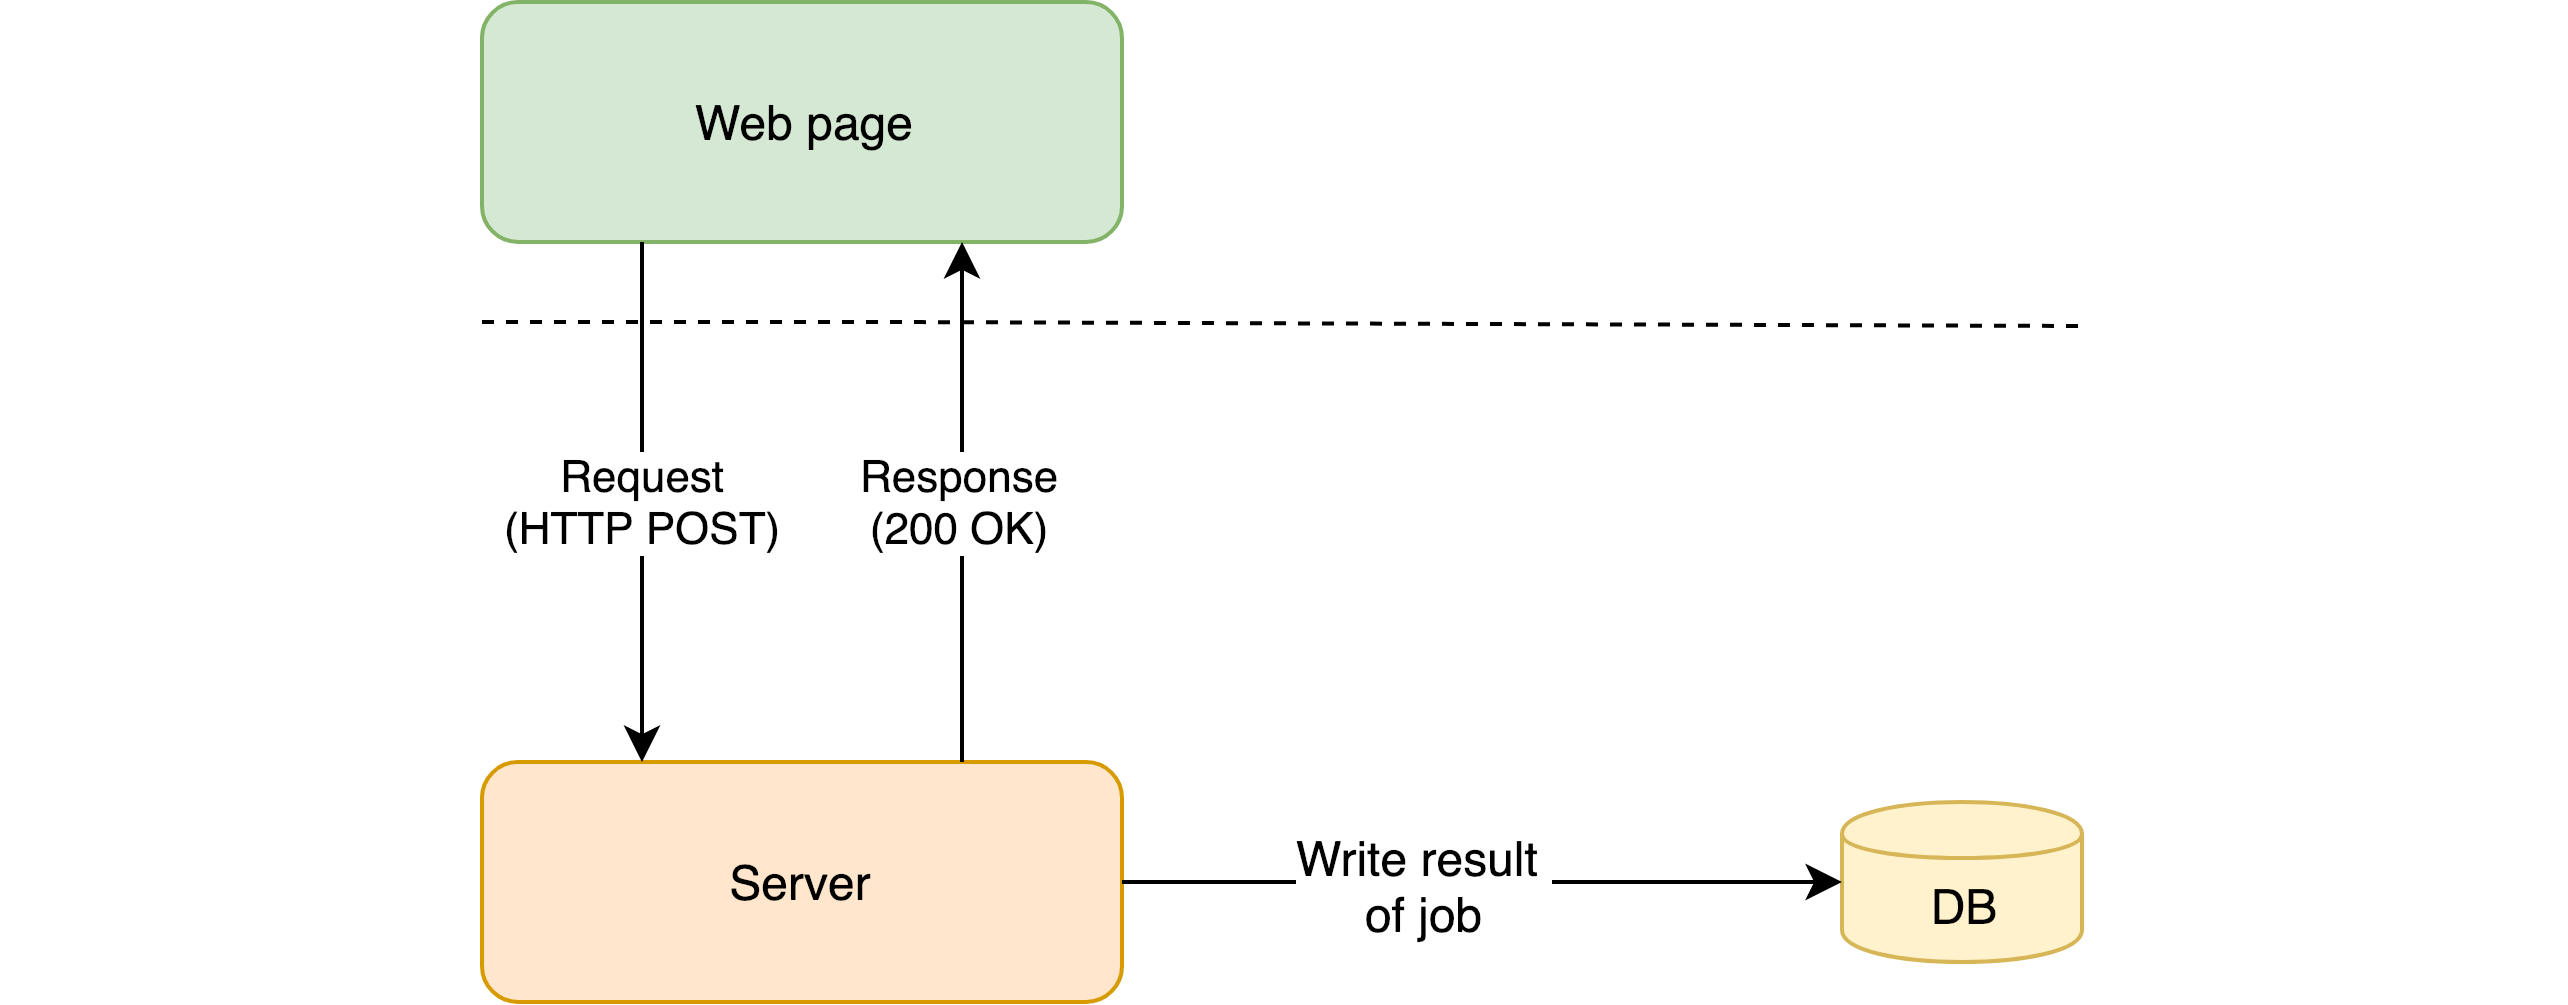 Typical web app architecture